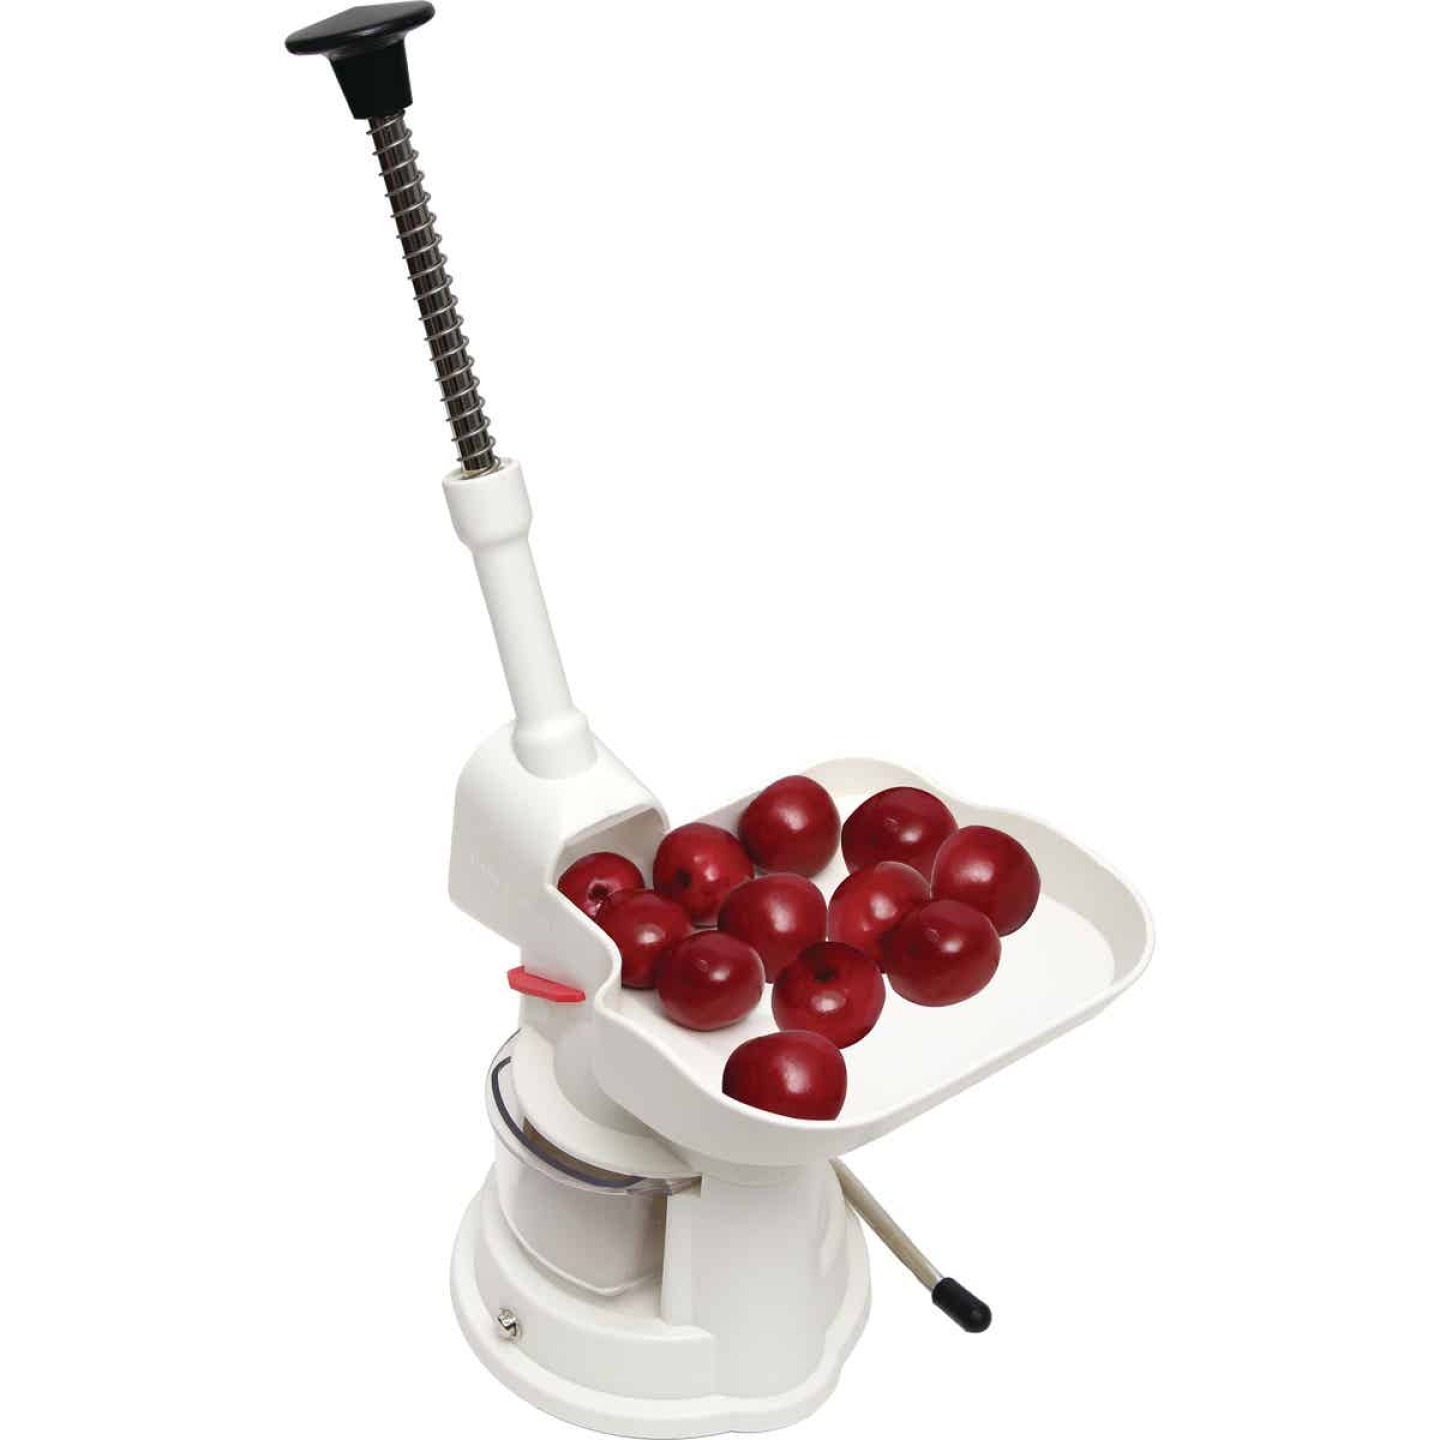 Orchard Suction Base Cherry Pitter/Stoner Image 1